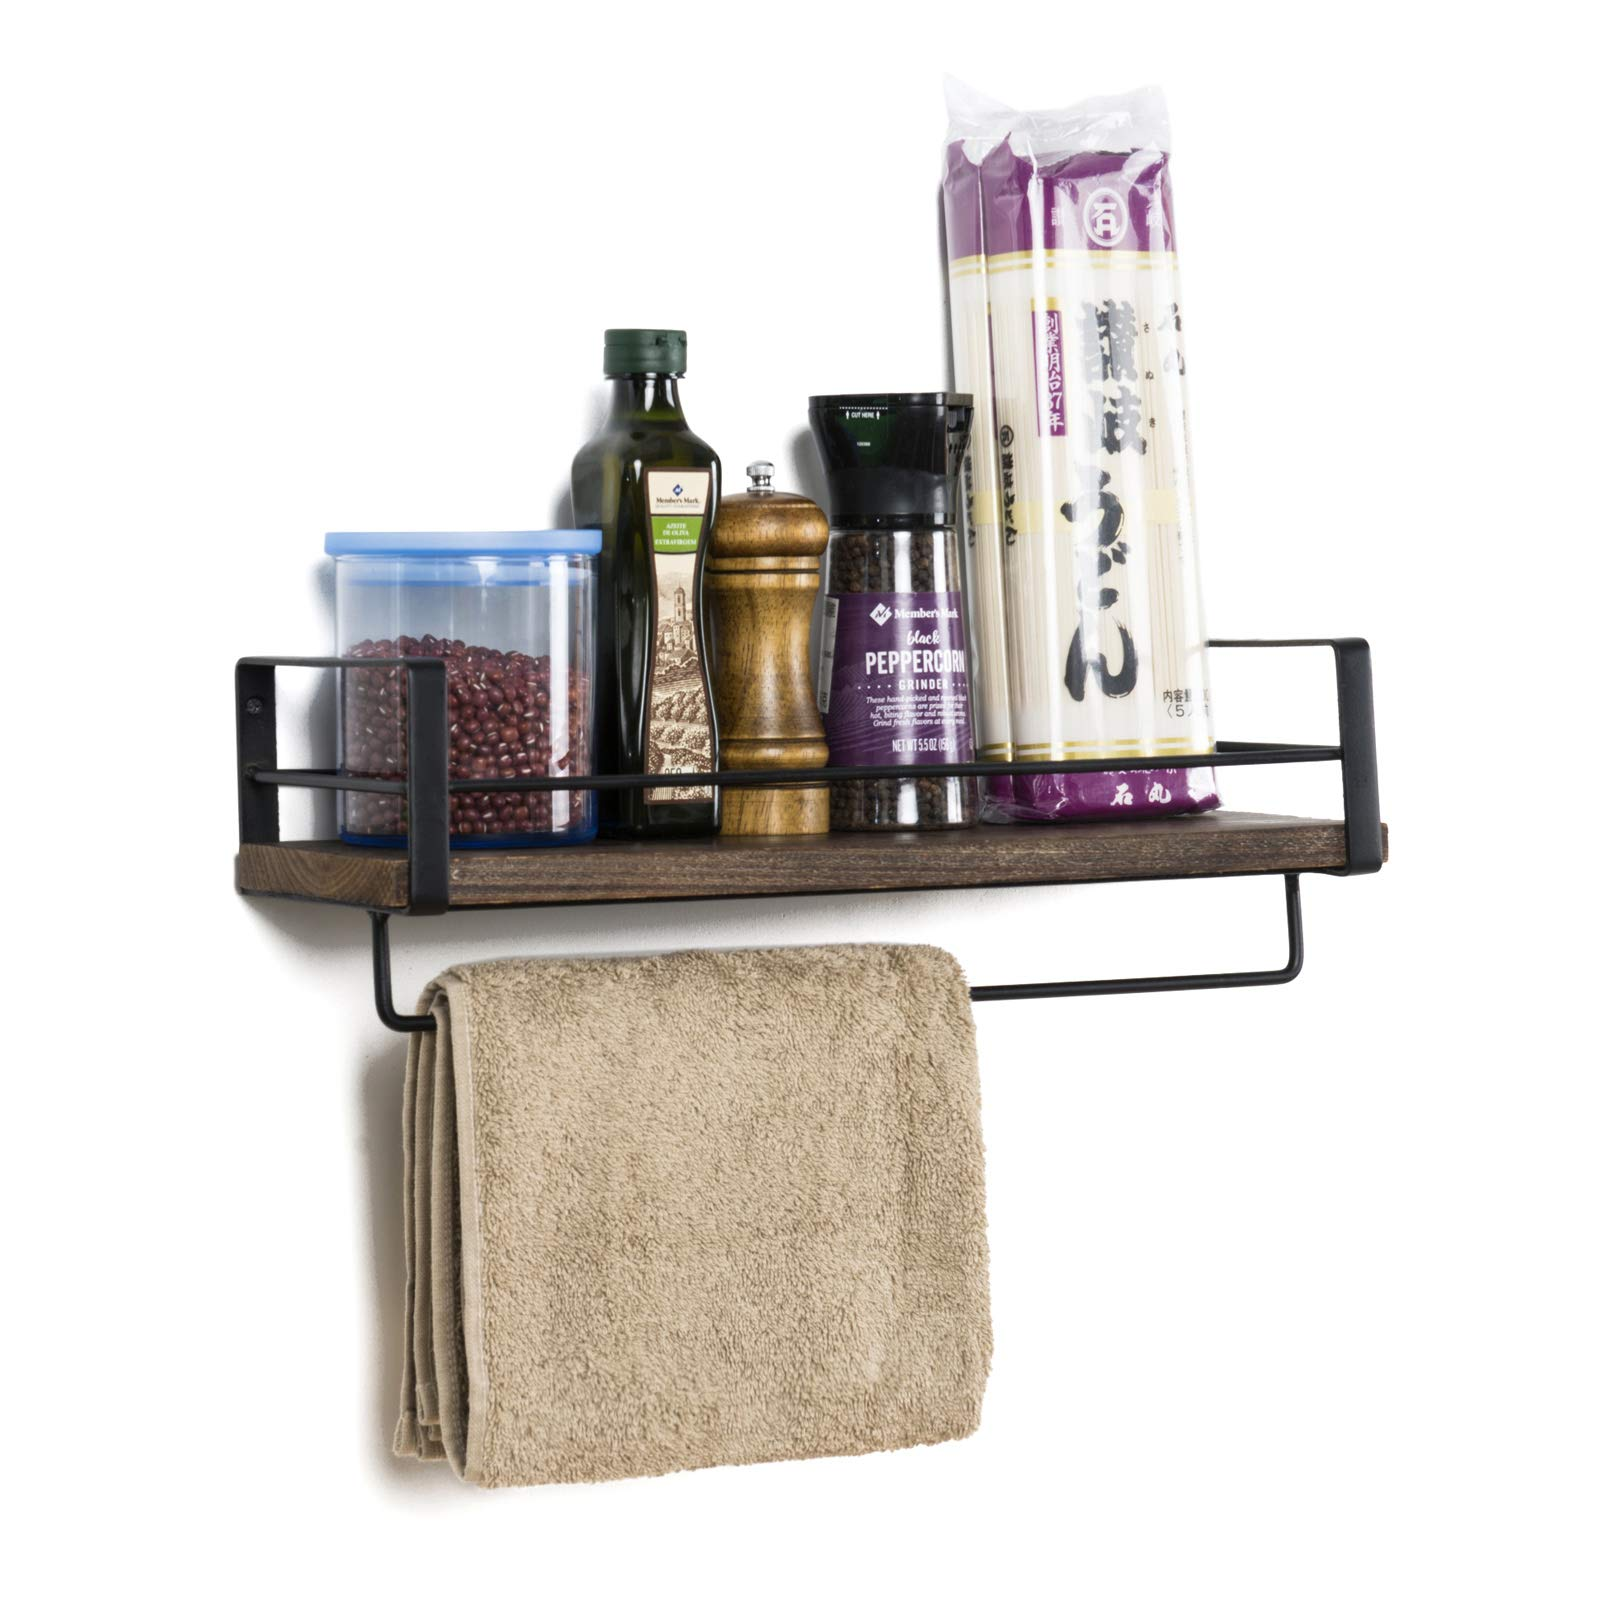 SODUKU Rustic Kitchen Wood Wall Shelf, Spice Rack Shelf with Towel Bar,Wood and Metal Floating Shelves Wall Mounted Toilet Storage Shelf for Kitchen Bathroom Bedroom Living Room - ➤STURDY STRUCTURE- Simple design rustic wood shelves constructed of solid paulownia wood boards and powder coated metal brackets.Lightweight but solid wood can holds up to 50 lbs. ➤EASY INSTALLATION - There comes with necessary durable hardware tool,super easy to assemble on the wall.The rustic wood shelves overall dimension: 16.33''L X 5.6''W X 5.9''H ➤EFFICIENT SPACE SAVER - Our rustic wood wall shelf offers a large space for storage and can display in your kitchen, living room, bedroom, bathroom, entryway and more. Creates ample shelf space in unused areas of the home,perfect solution for compact areas. - wall-shelves, living-room-furniture, living-room - 71JnKPBGjML -